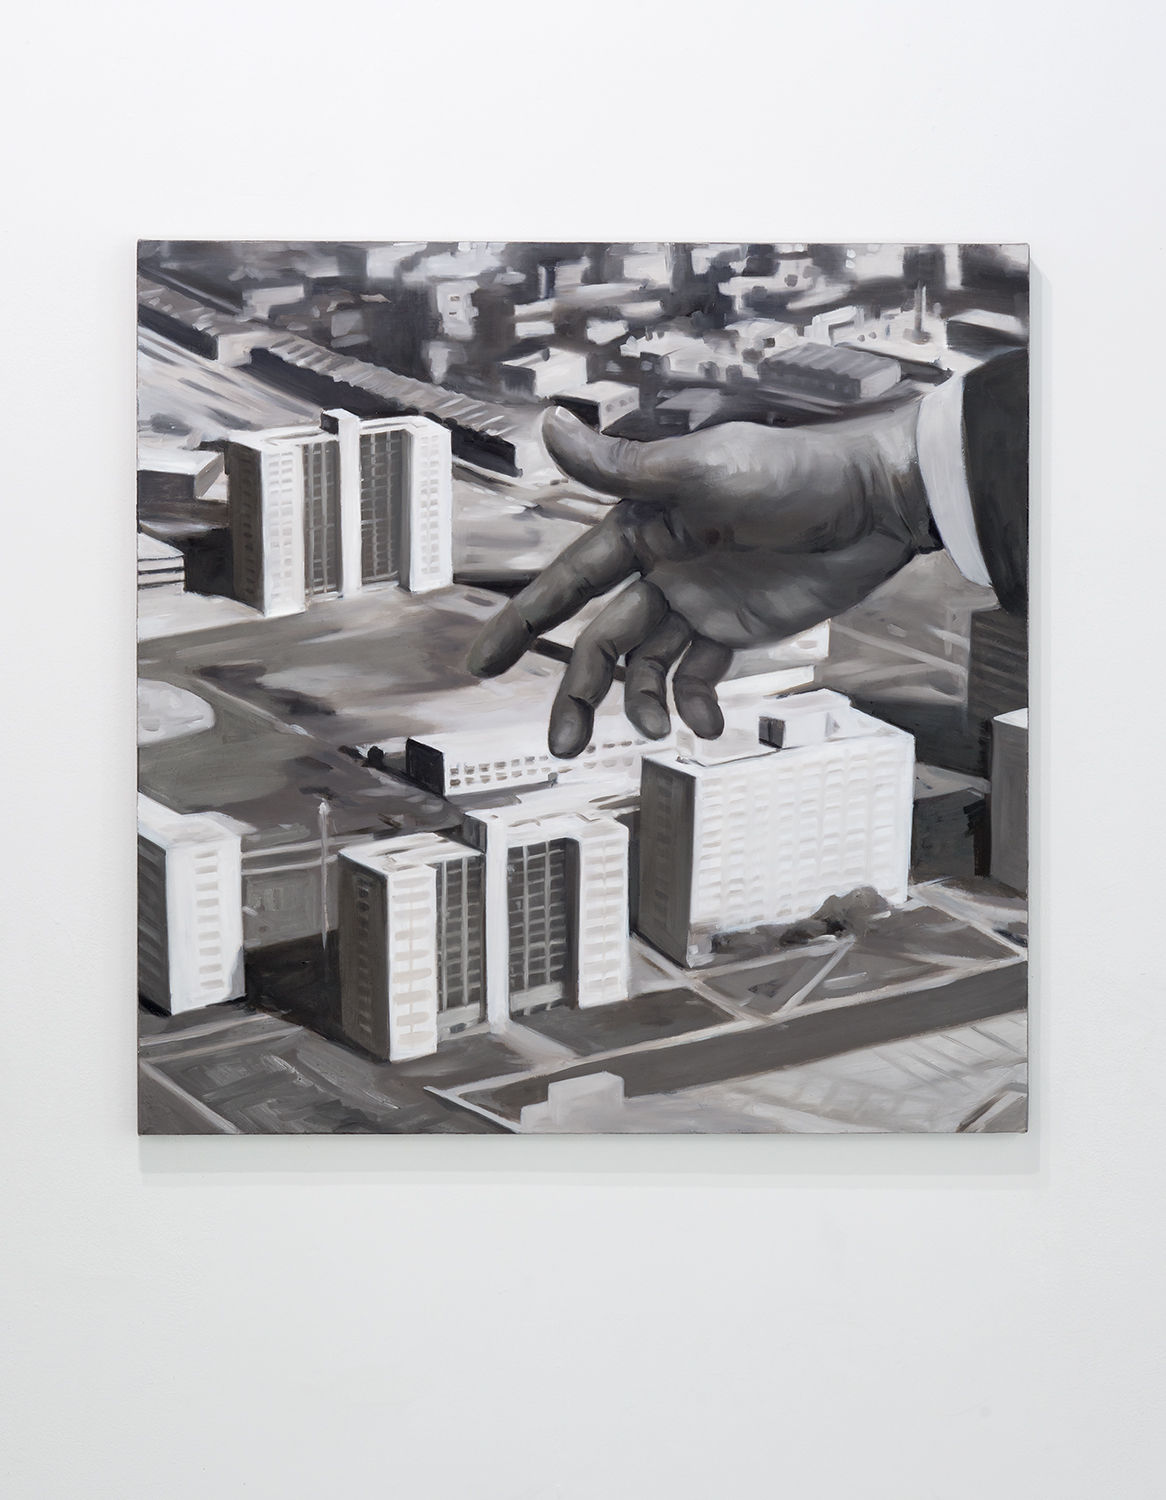 New City by Haerim Lee. Black and White painting that shows a hand gesturing over a model of the city of Chicago. Image courtesy of Greg Ruffing.